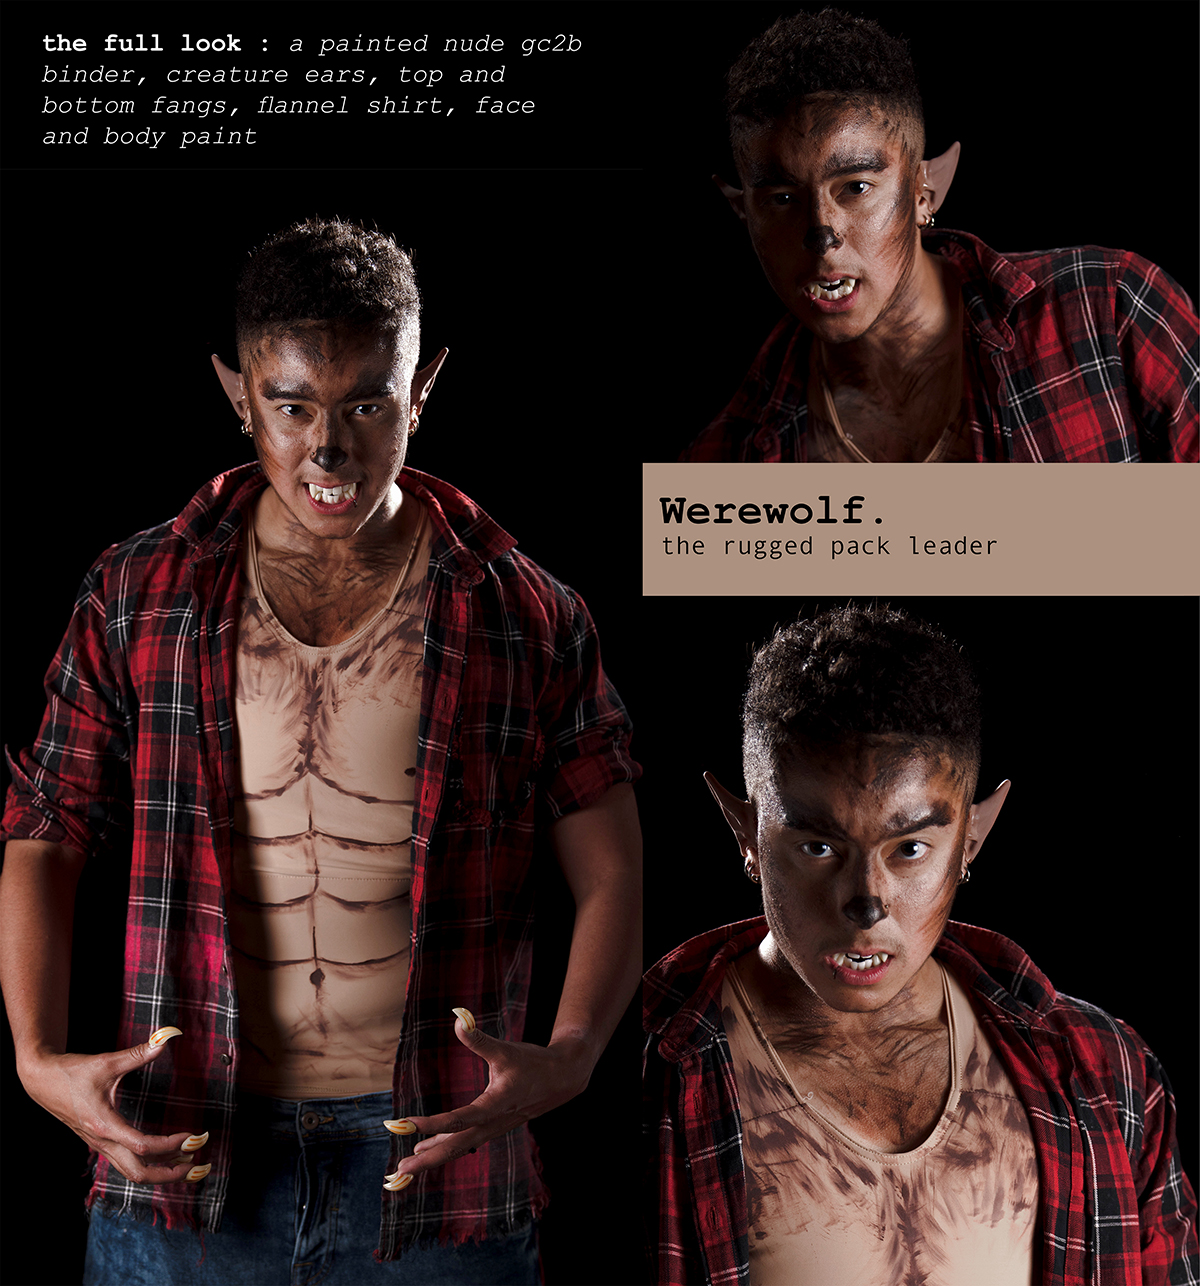 Werewolf. the rugged pack leader / the full look: A Painted Nude gc2b Binder, Creature Ears, Top and Bottom Fangs, Flannel Shirt, Face and Body Paint